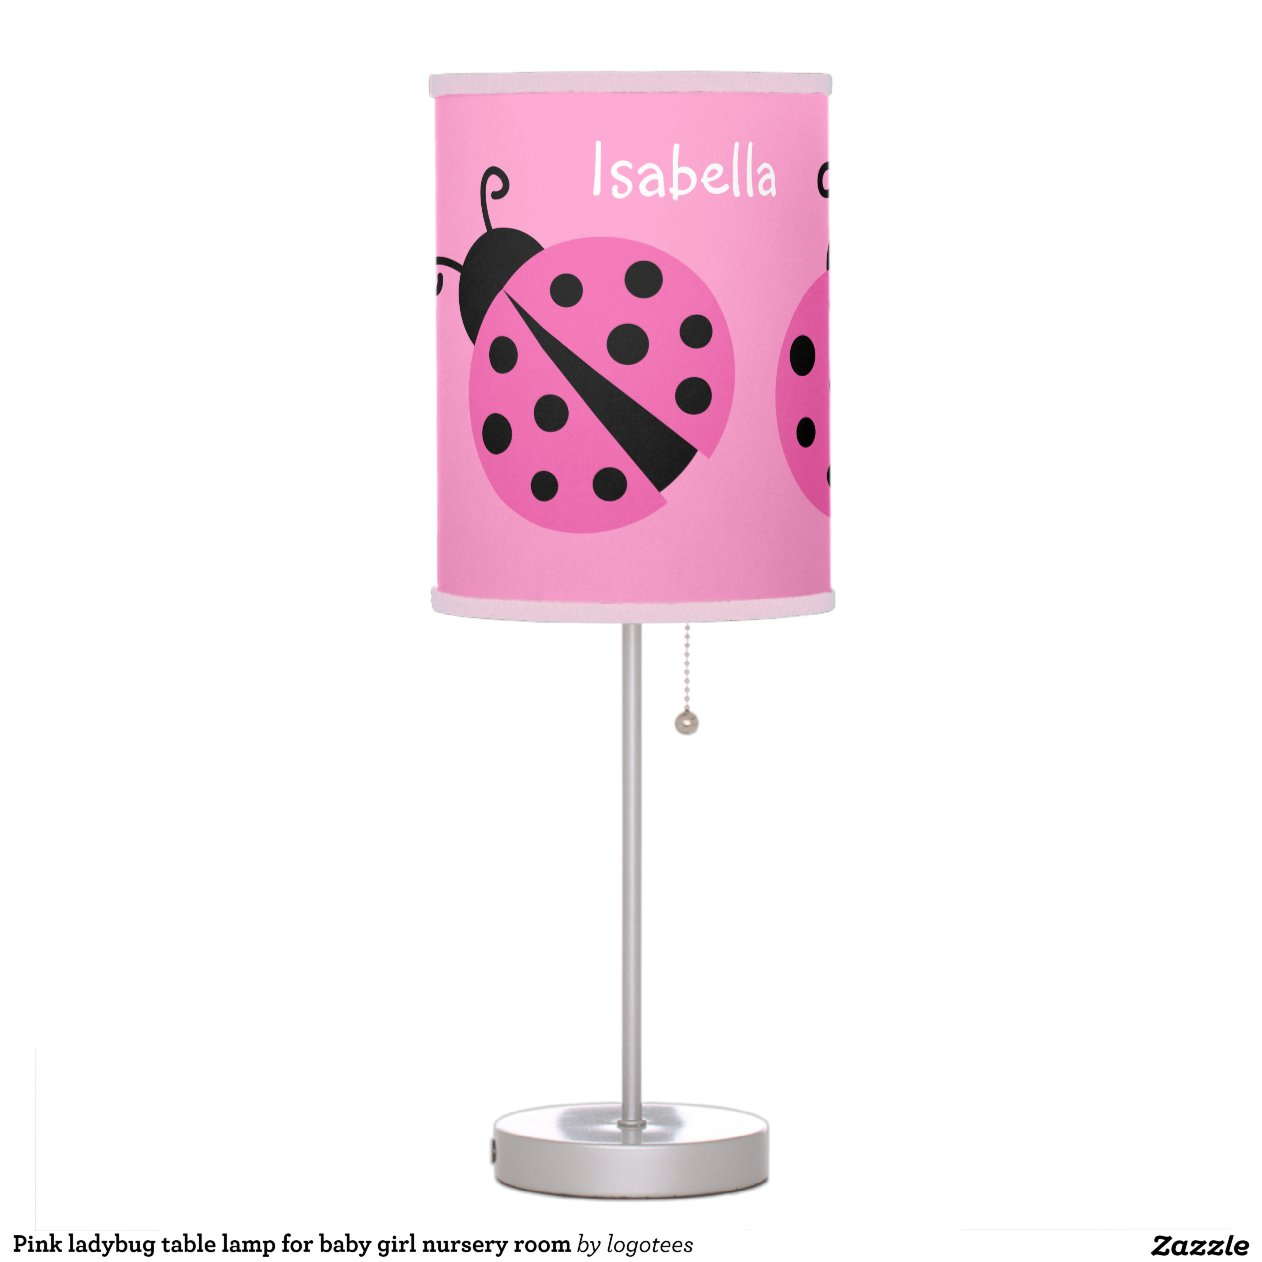 Lamps For Baby Nursery Pink Ladybug Table Lamp For Baby Girl Nursery Room